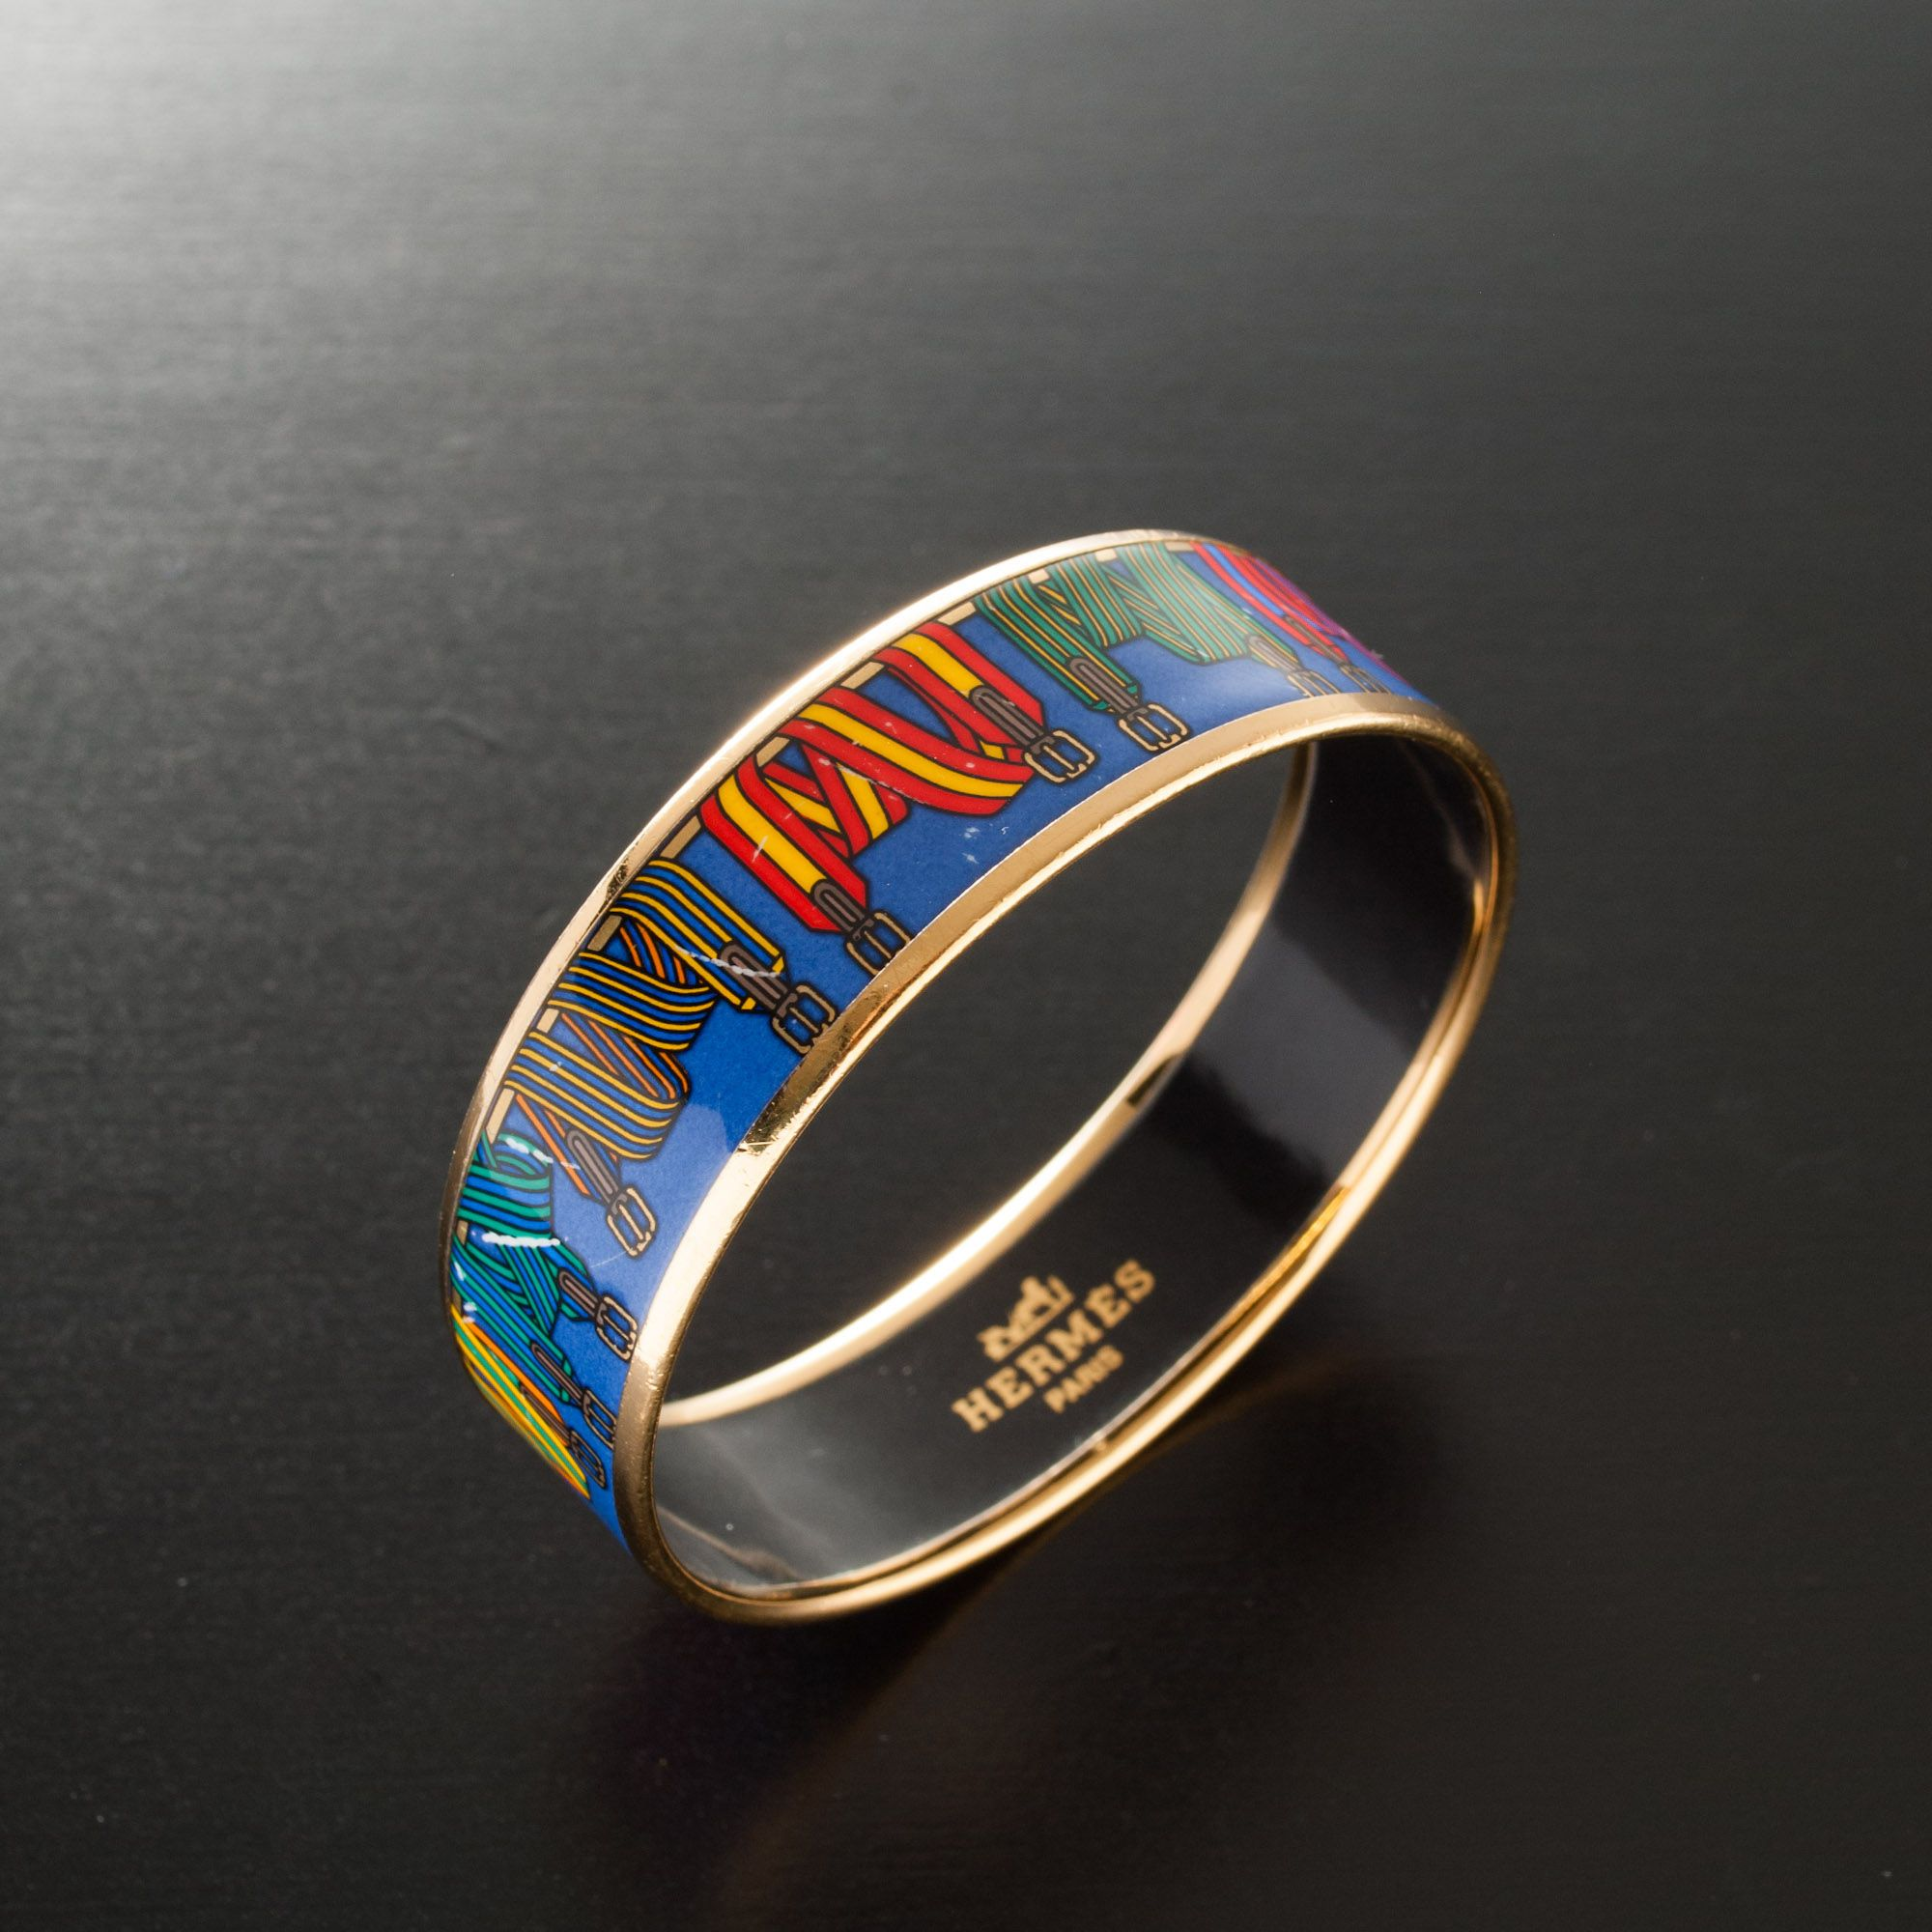 #Hermès multicolor #enamel #bangle. Available at lxrco.com for $499